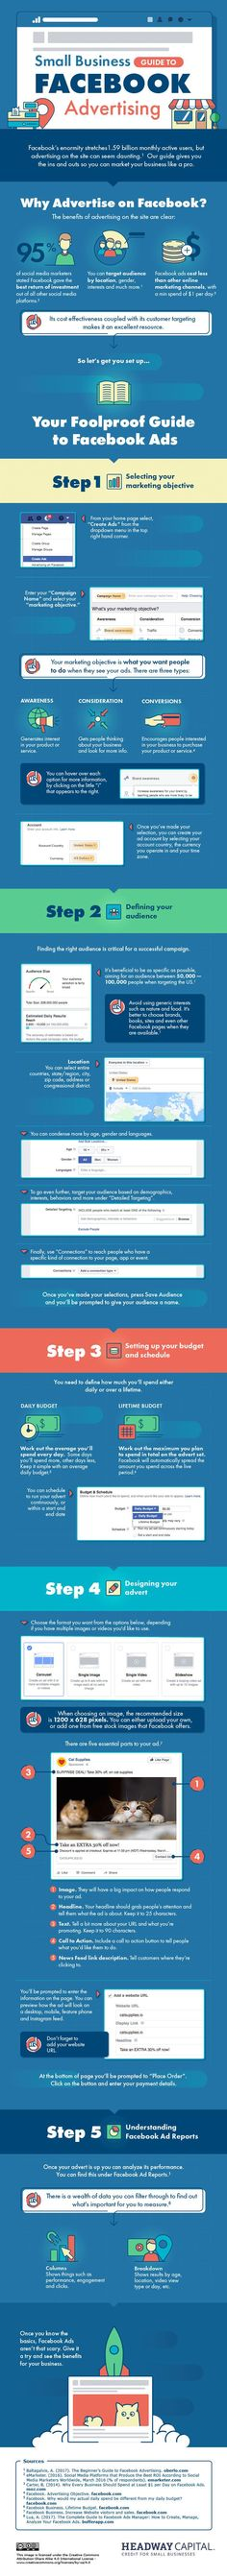 Facebook is still the top social networking site on the Internet. Plenty of businesses are using it to reach their target audience and expand their reach. This infographic from Headway Capital discusses how small business can get started with Facebook advertising: